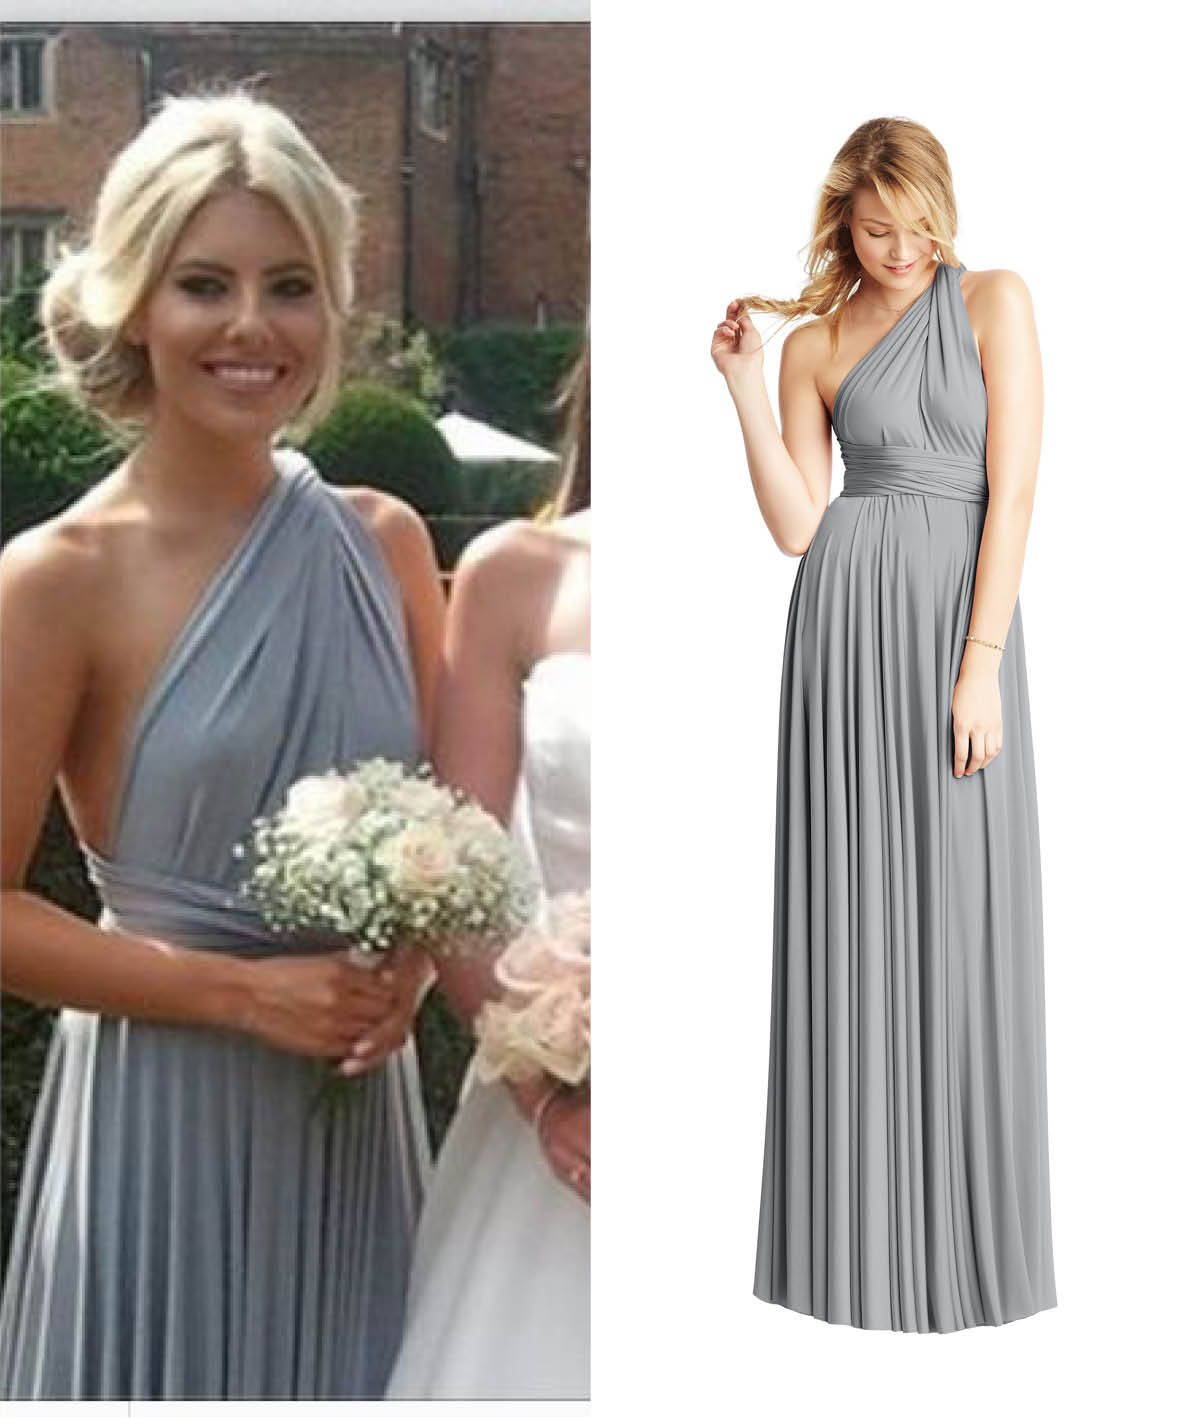 Celebrity bridesmaids steal their style wedding wedding dress celebrity bridesmaids steal their style bridesmaid dresseswedding ombrellifo Gallery